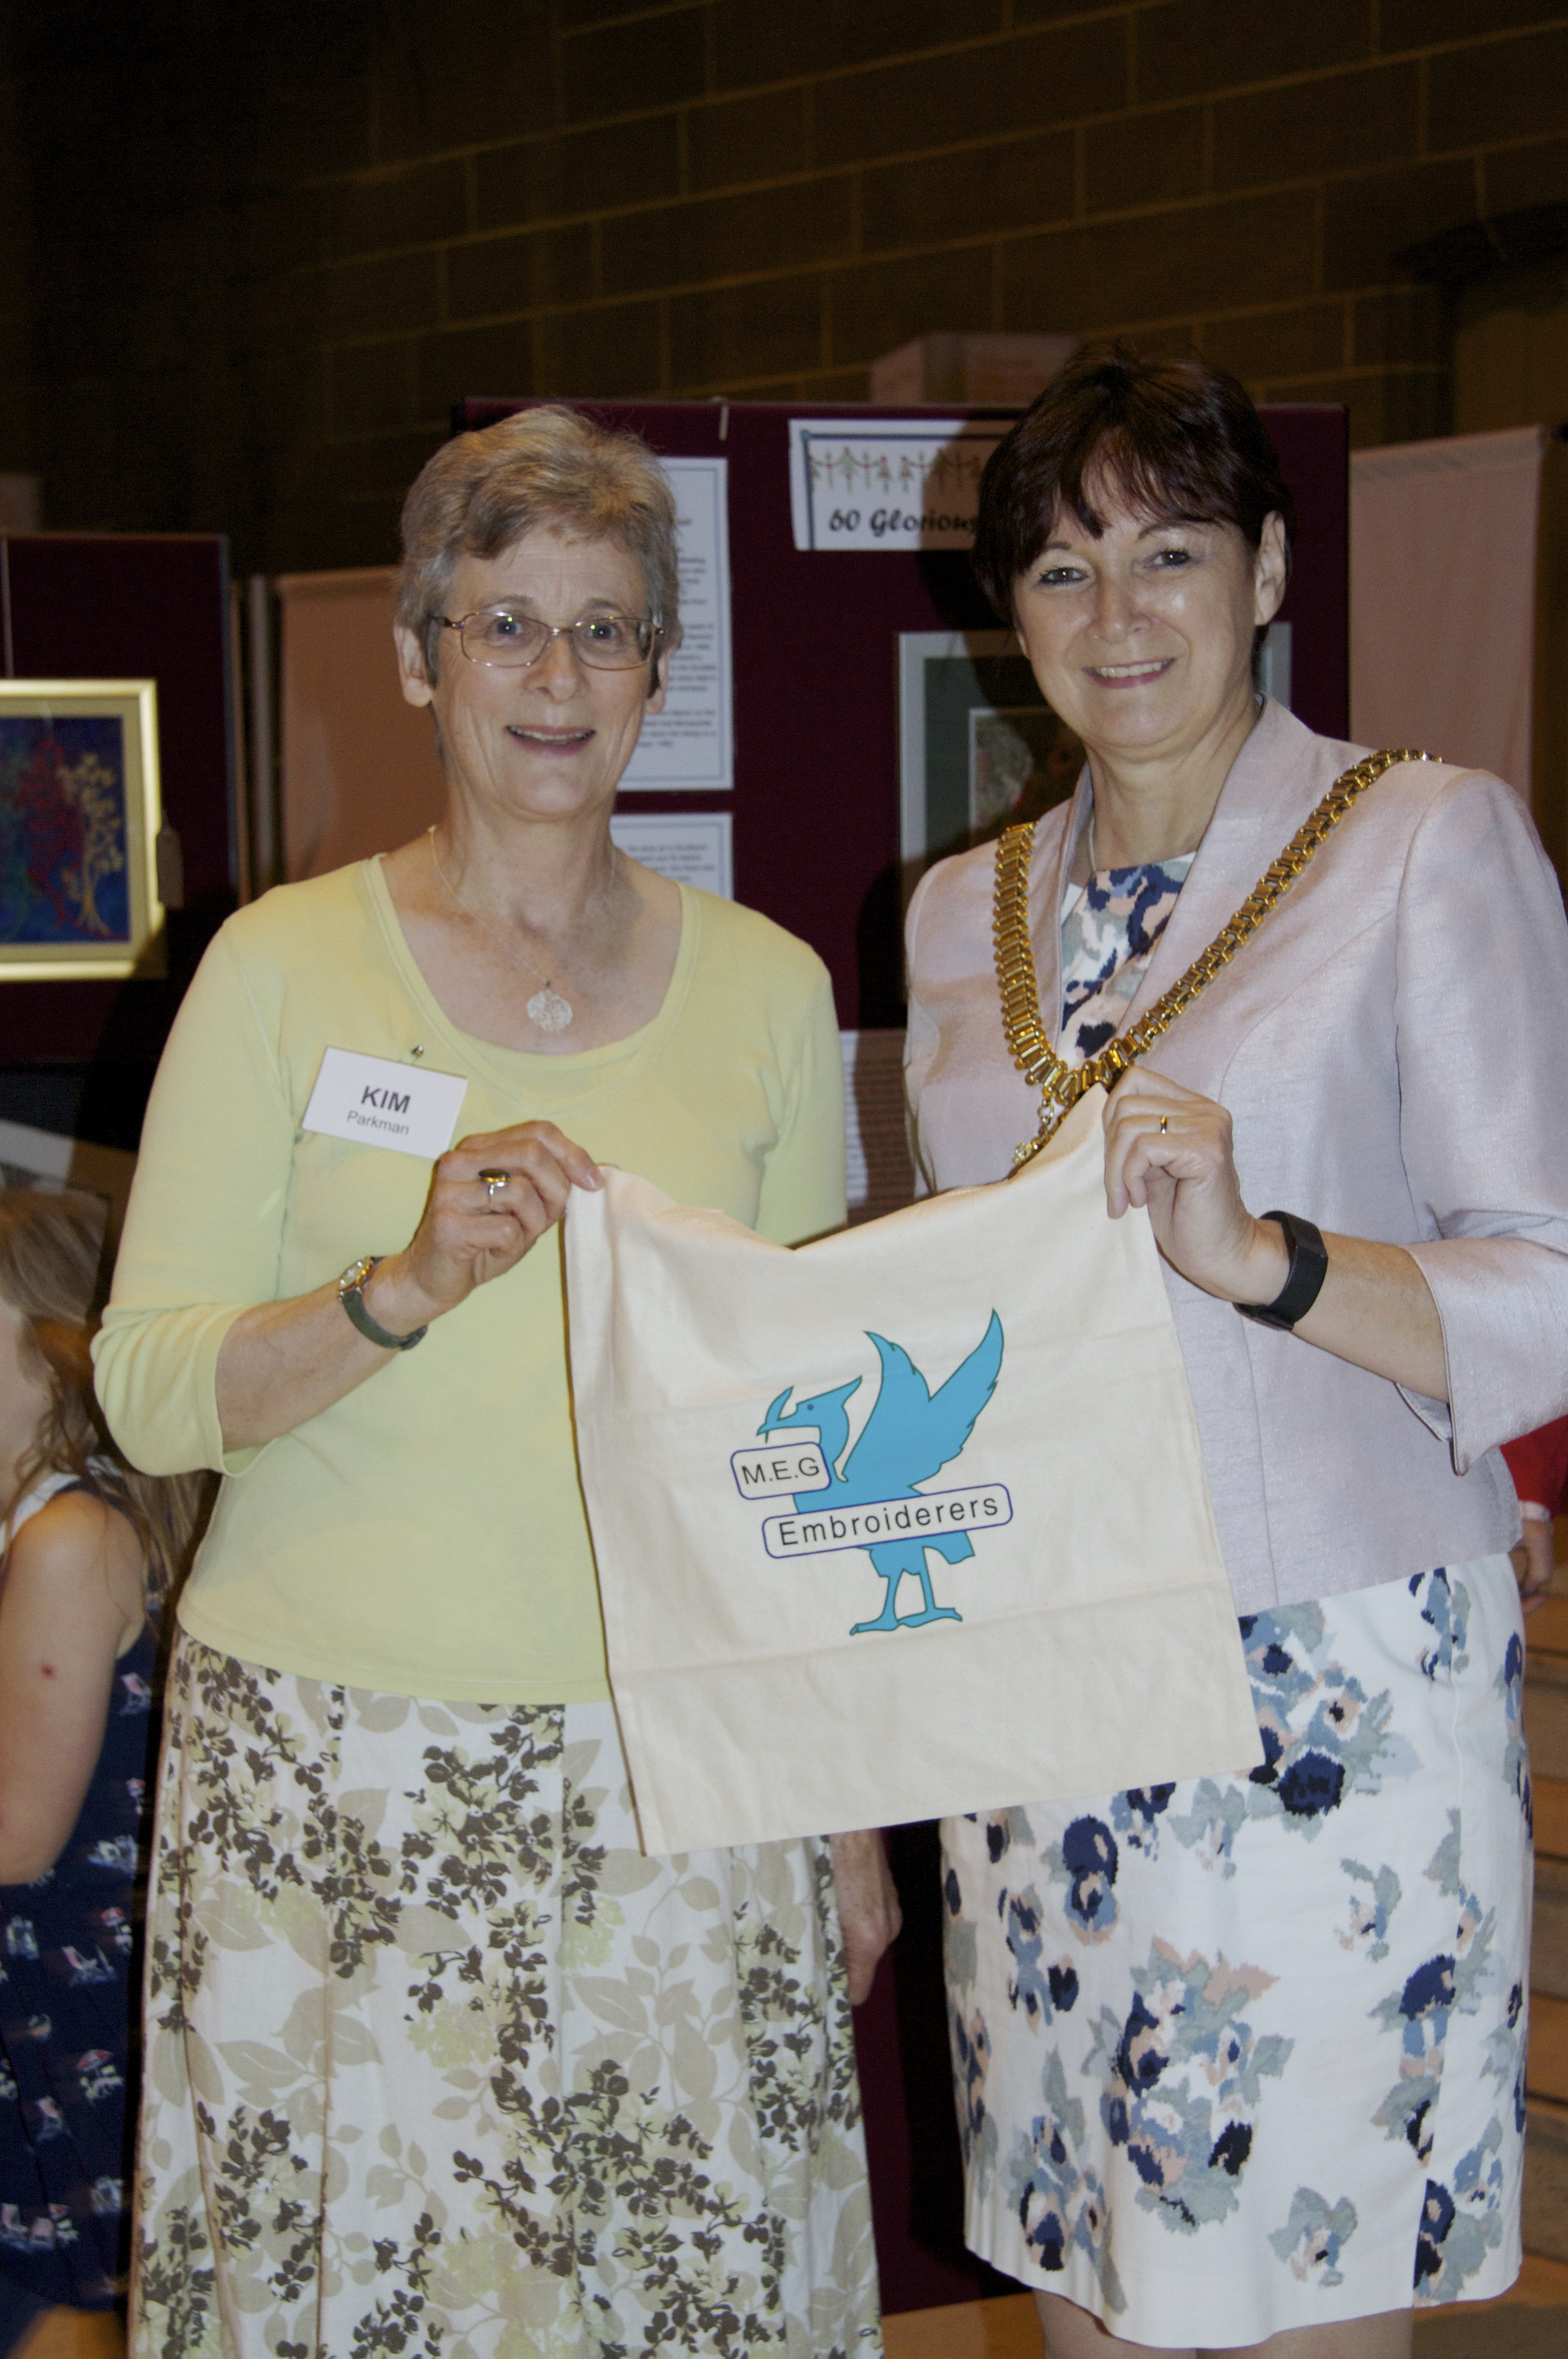 MEG Chair Kim Parkman and Liverpool Lord mayor Cllr Roz Gladden at 60 Golrious Years exhibition at Liverpool Cathedral 2016